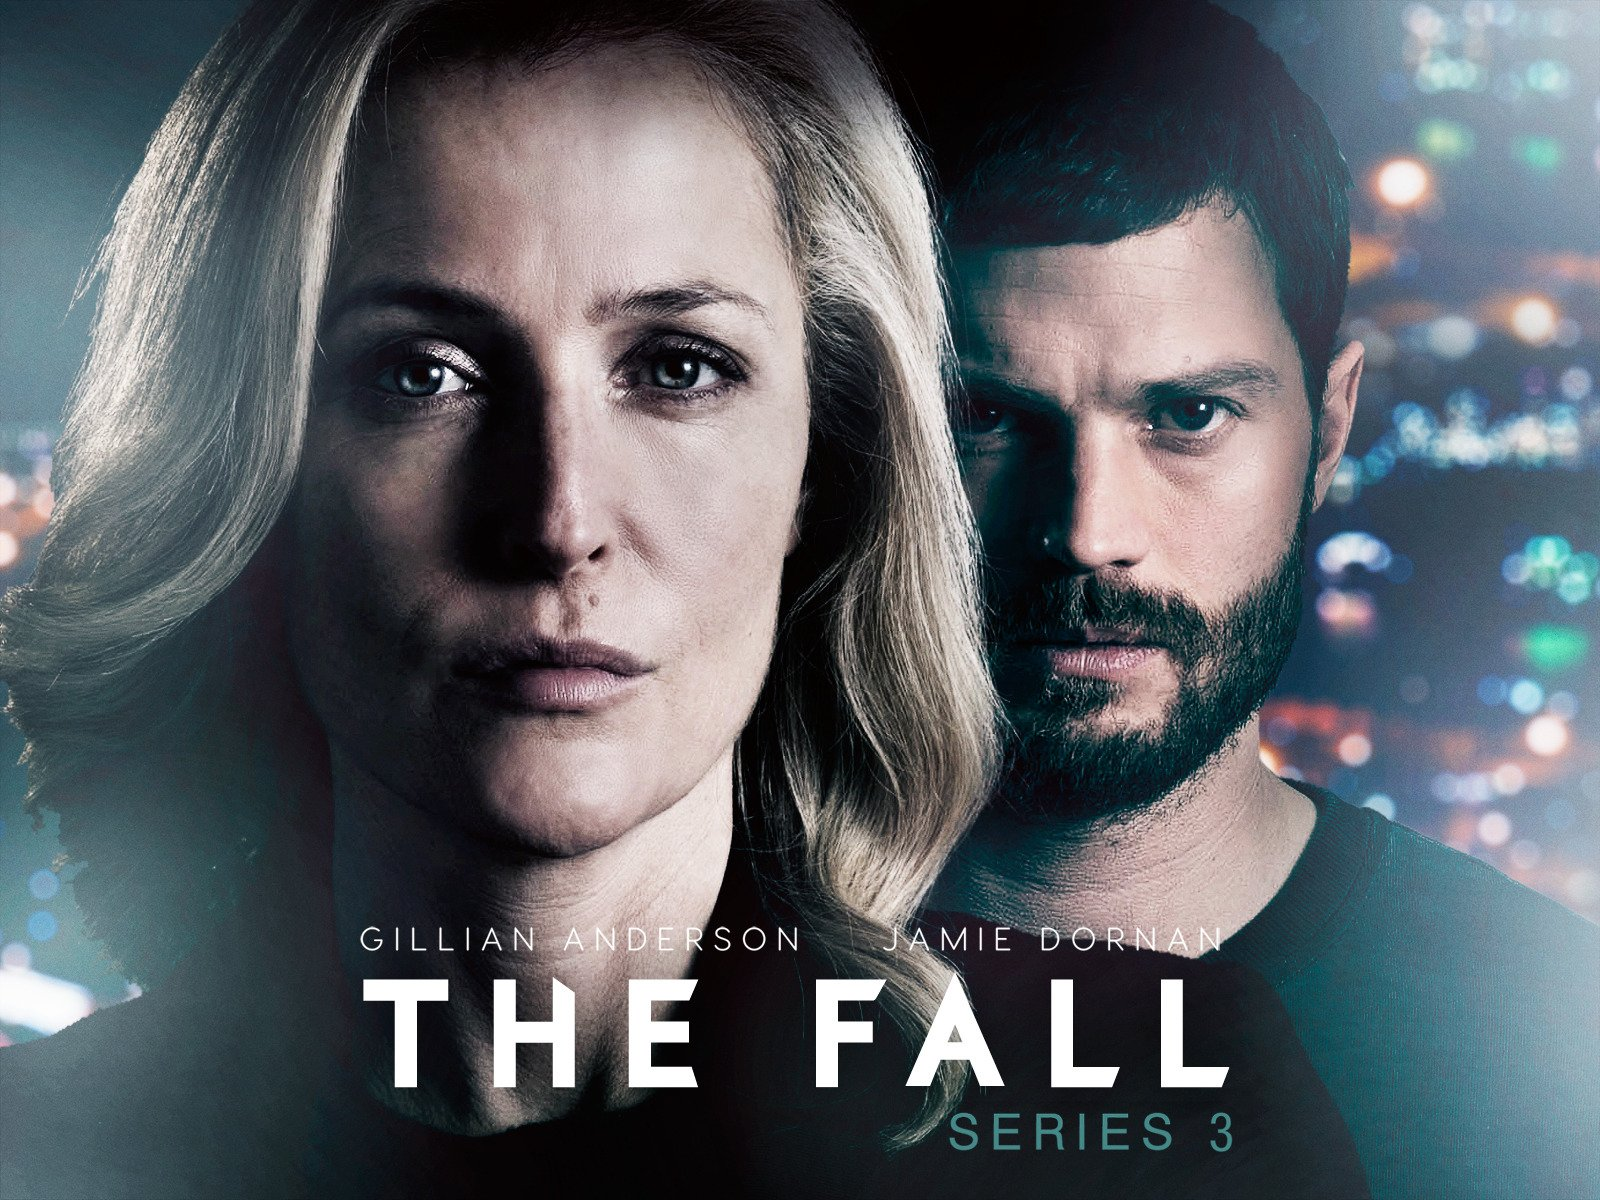 Amazon.com: Watch The Fall: Series 3 | Prime Video